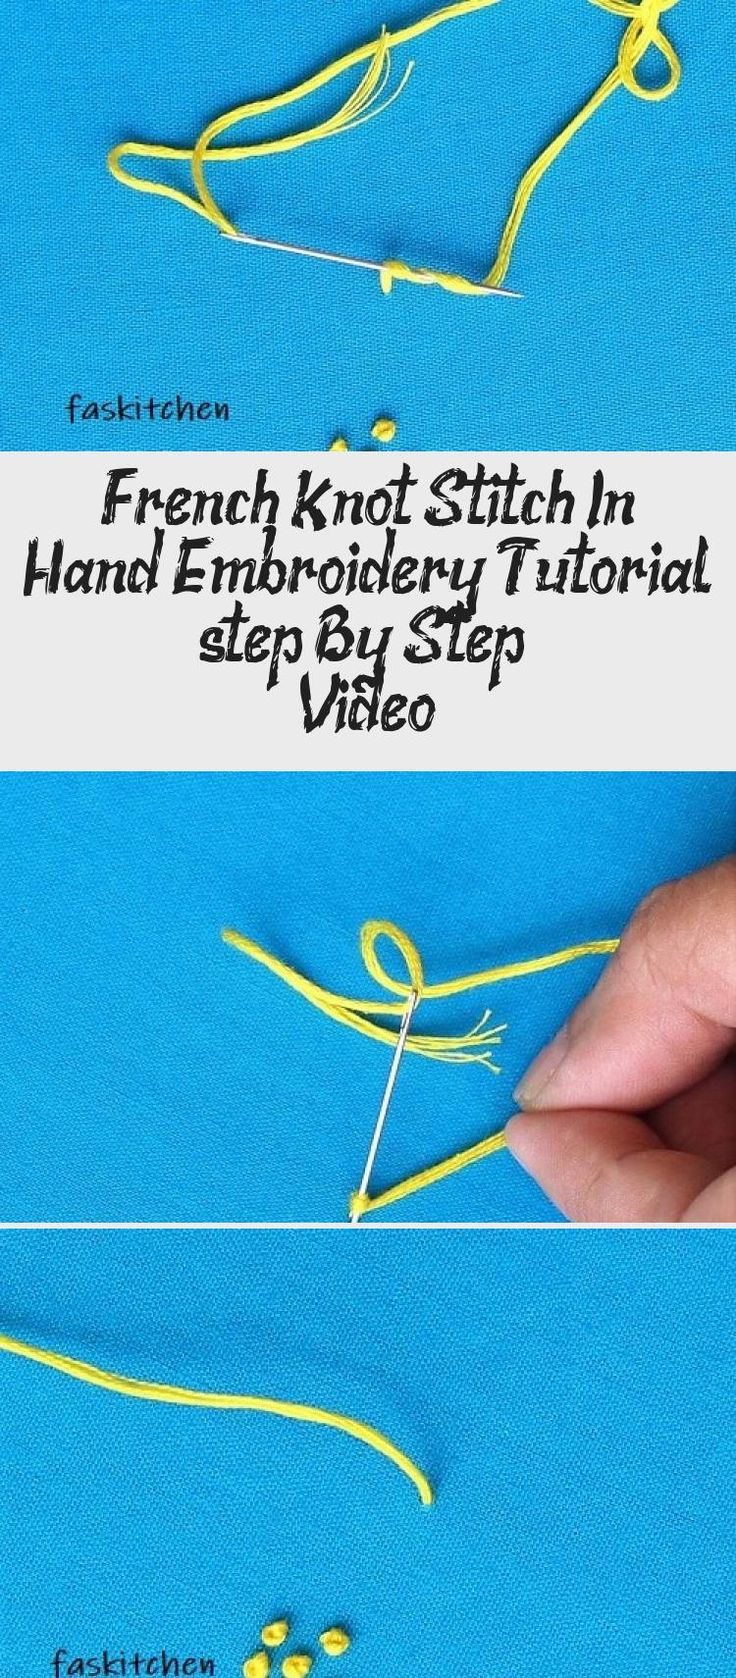 French knot stitch in hand embroidery tutorial step by